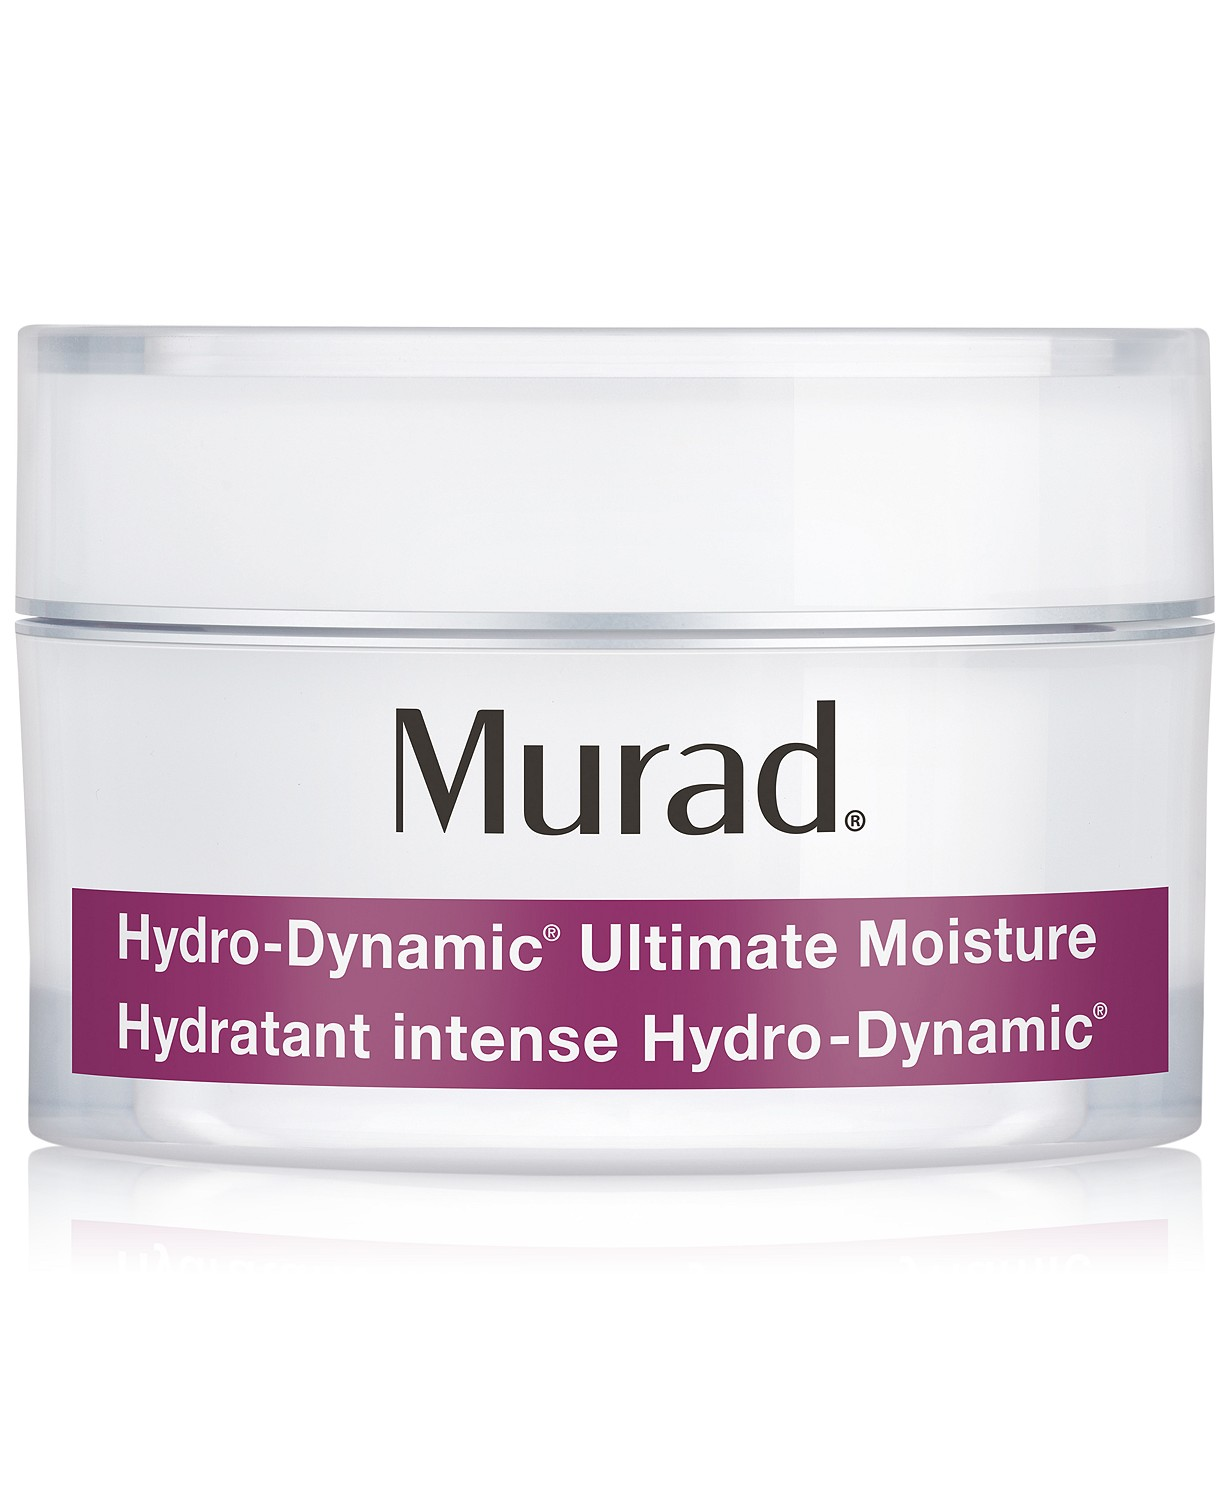 Save 50% on Murad Hydro-Dynamic Ultimate Moisture, 1.7-oz.